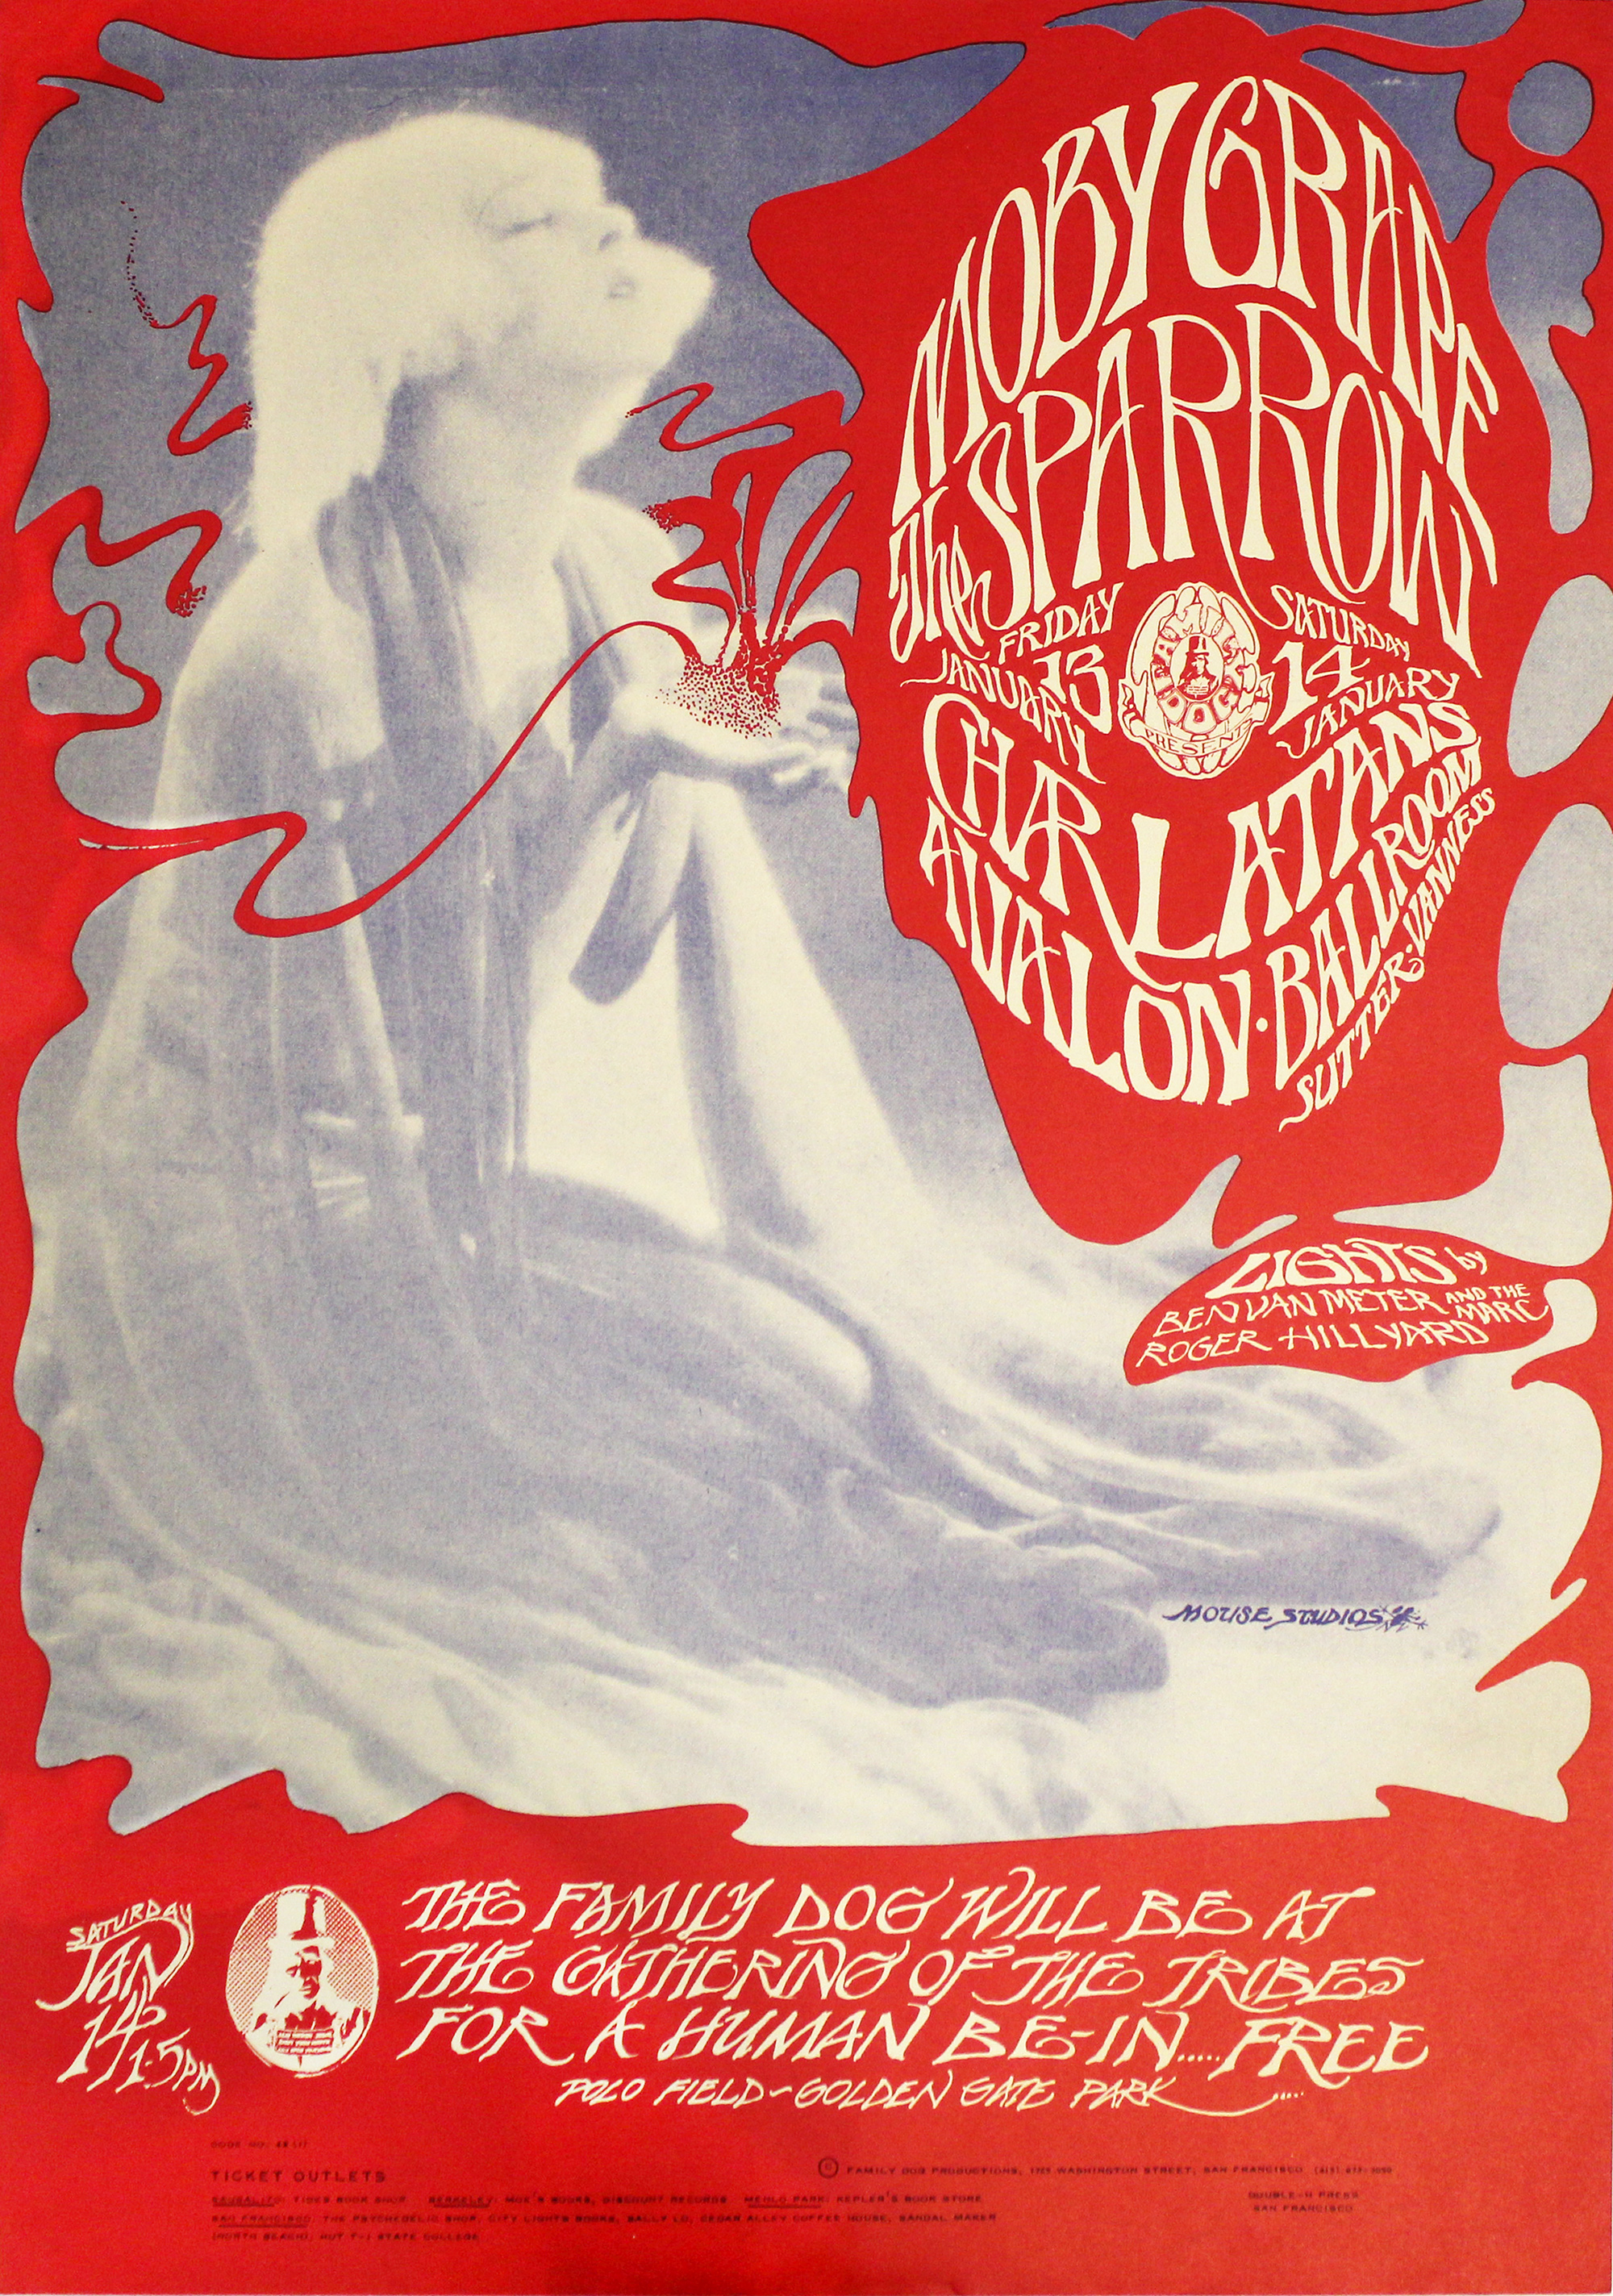 "Moby Grape Poster from Avalon Ballroom on 13 Jan 67: 14"" x 19 15/16"""